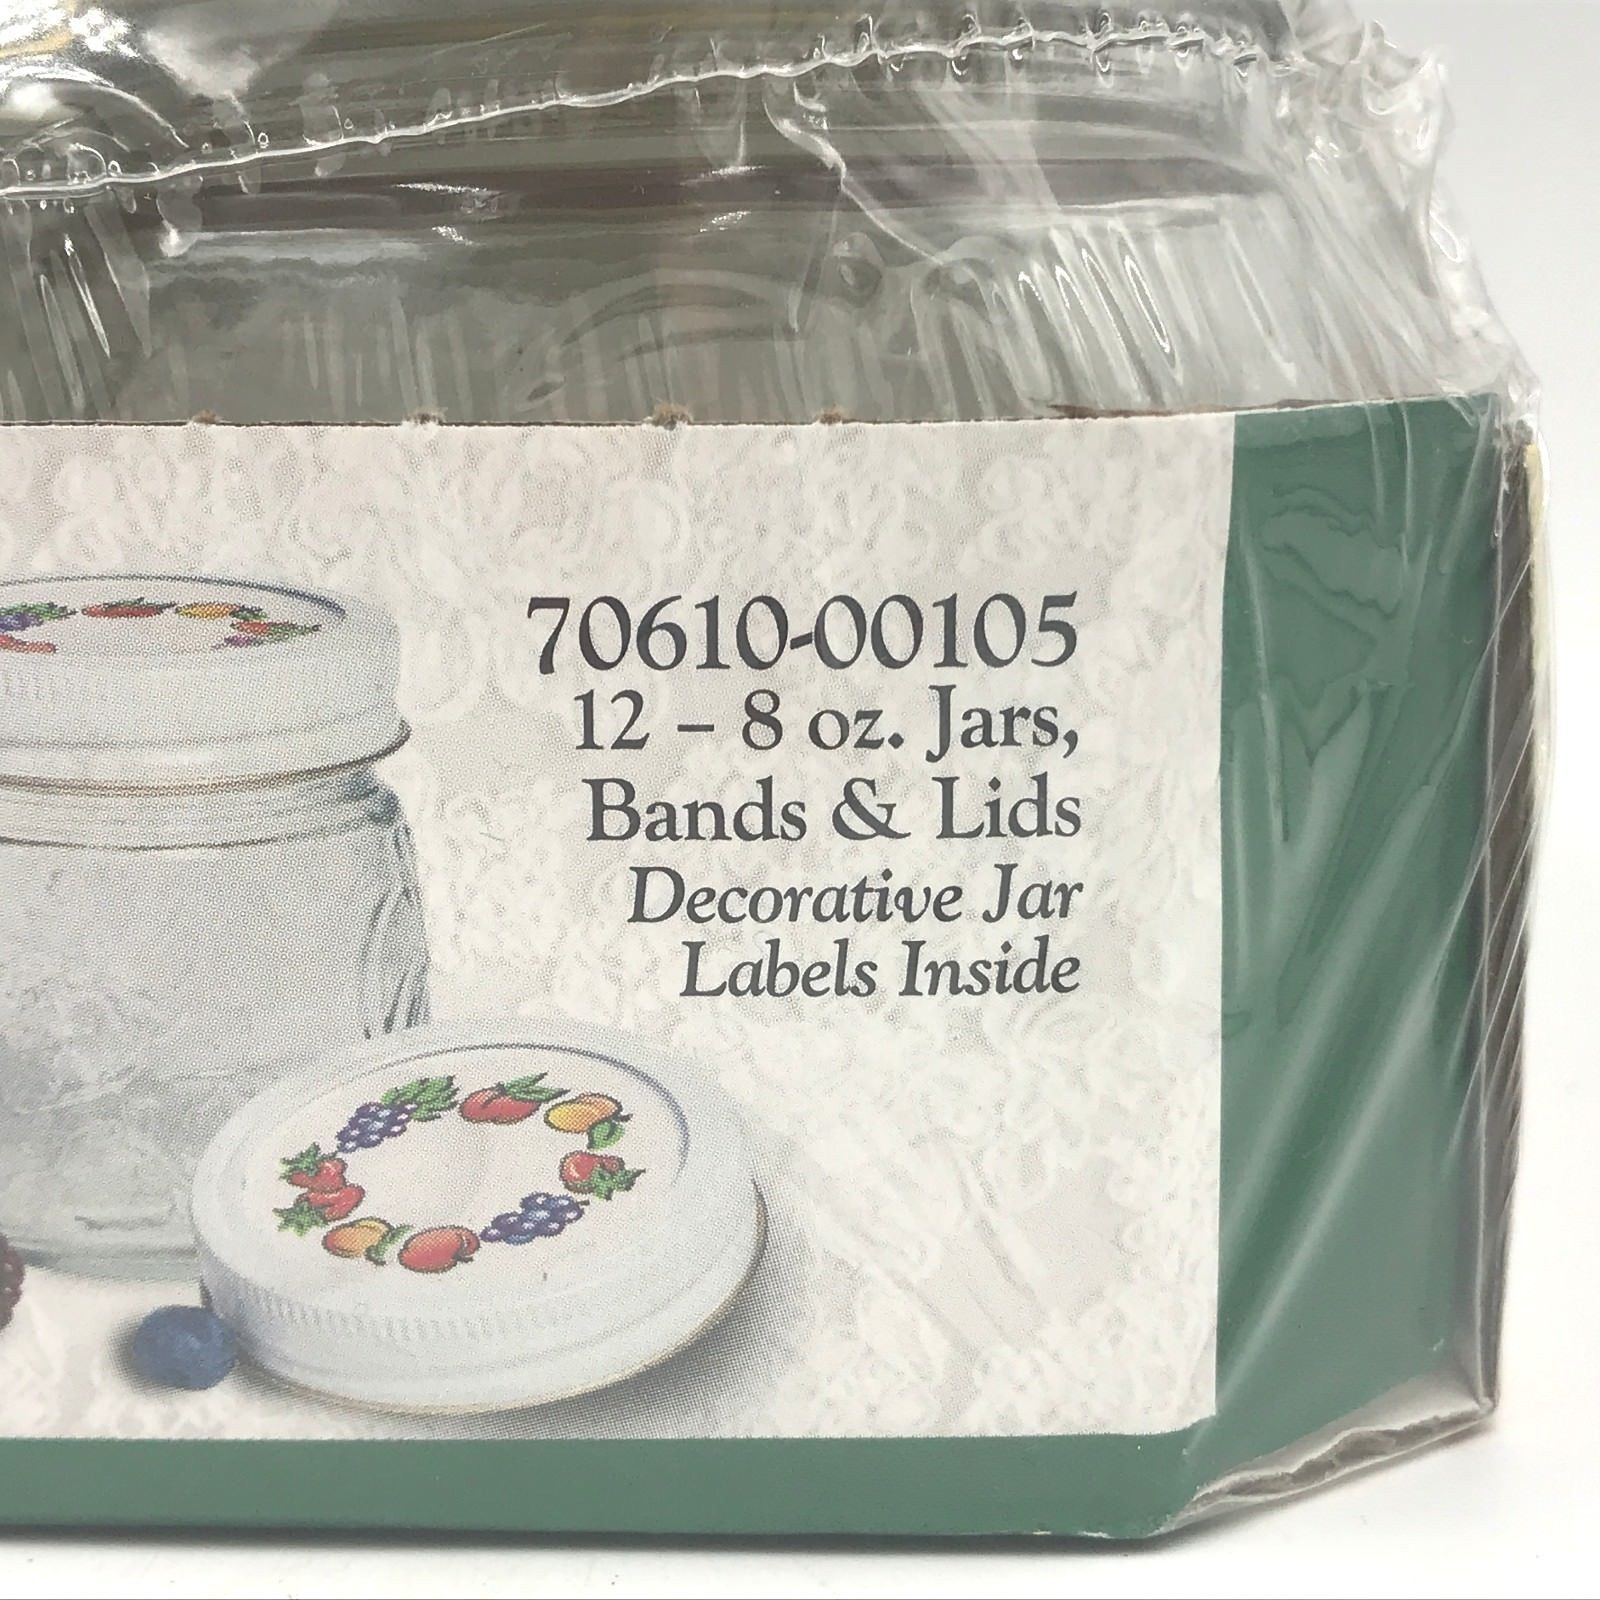 Kerr Fruit Decorated Lids Jam and Jelly 8 oz Jars Case of 12 NOS Embossed SH